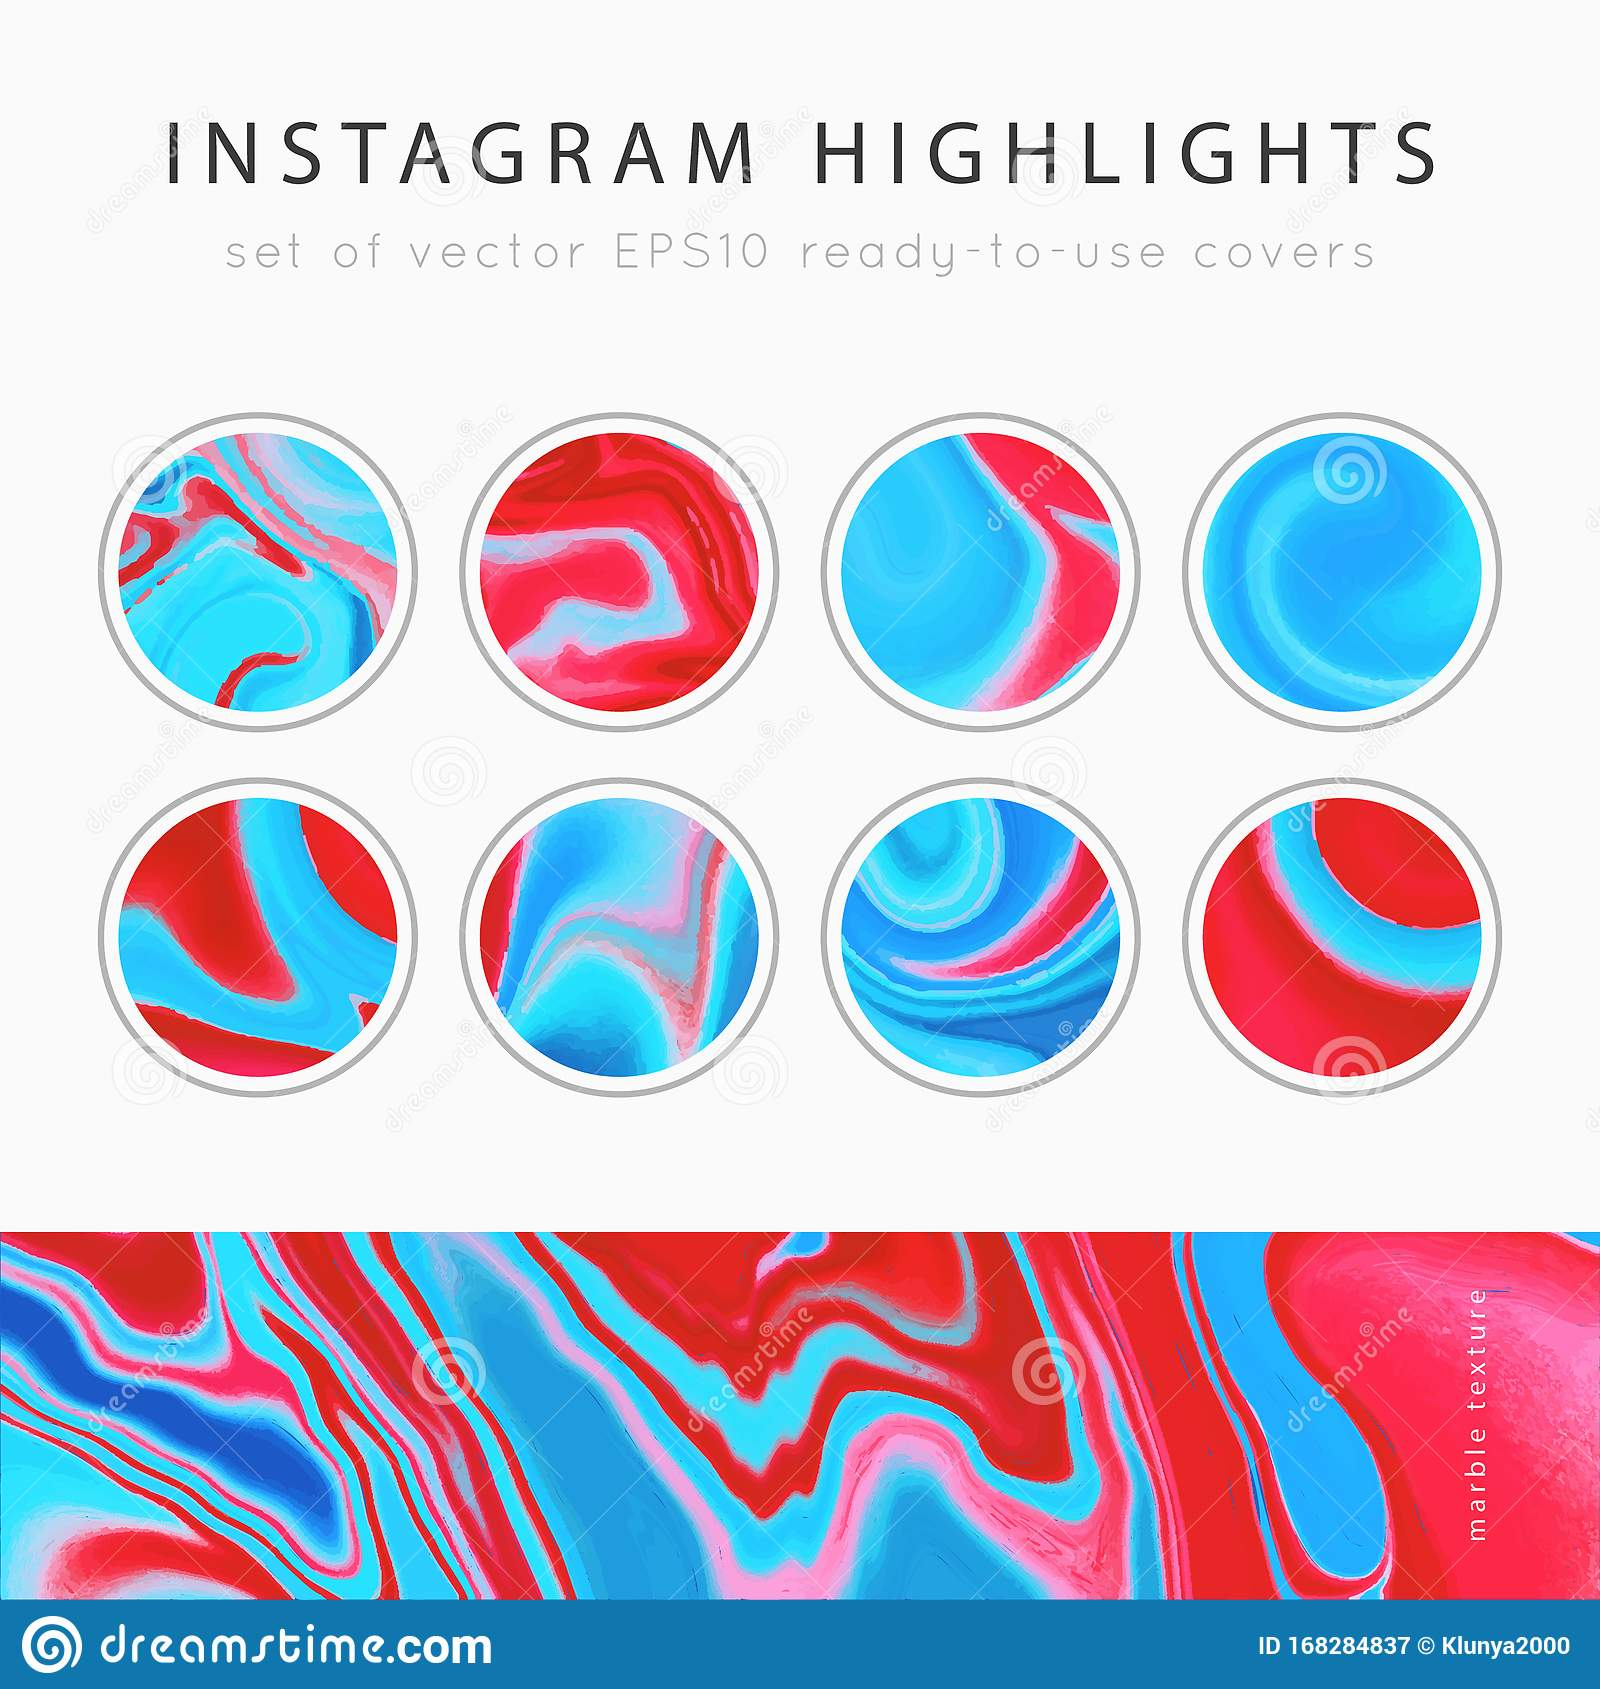 Instagram Highlight Covers Vector Stock Illustration Illustration Of Abstract Badge 168284837